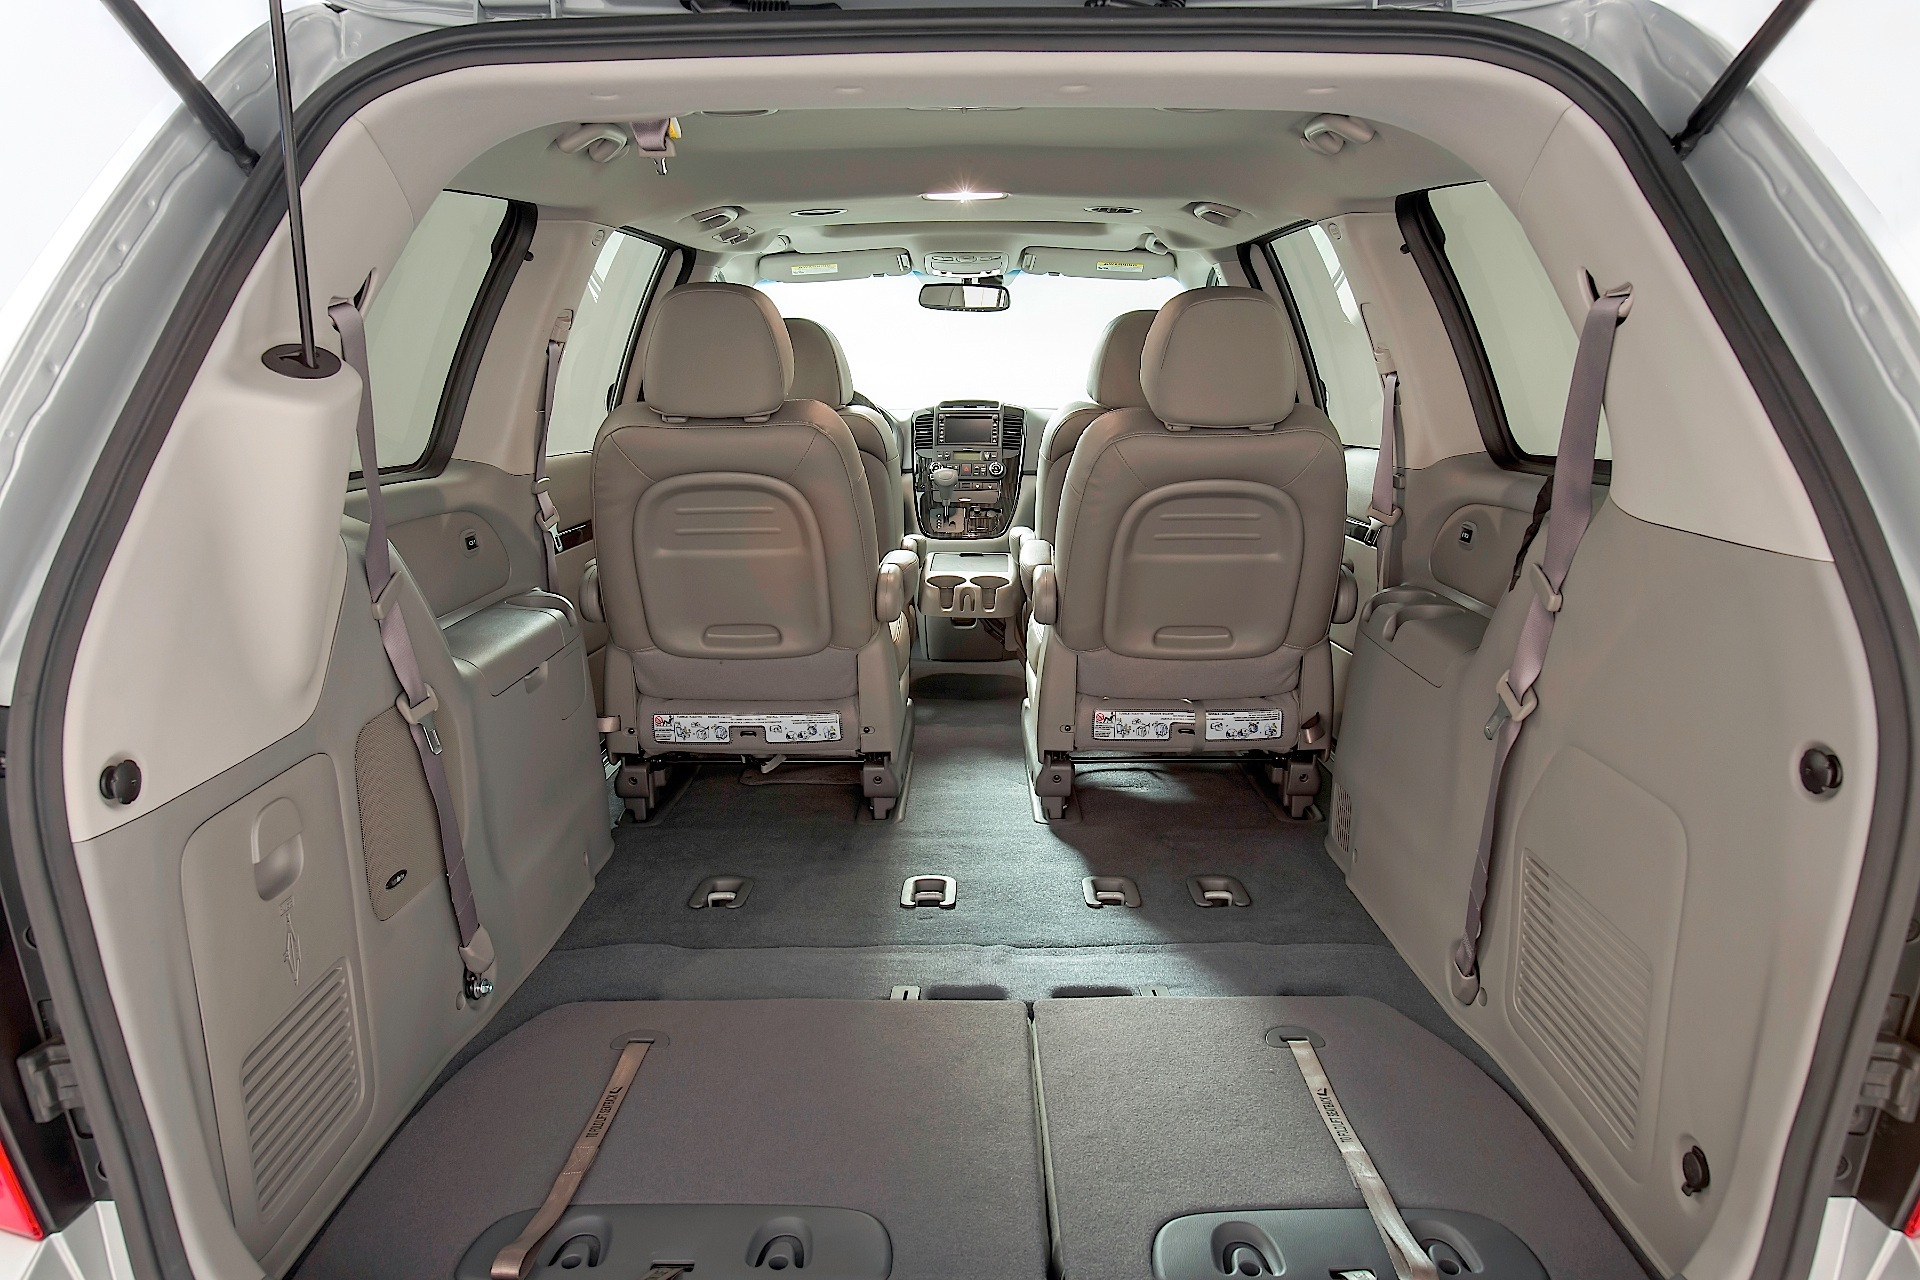 kia carnival sedona lwb specs 2005 2006 2007 2008 2009 2010 2011 2012 2013 2014 2015. Black Bedroom Furniture Sets. Home Design Ideas